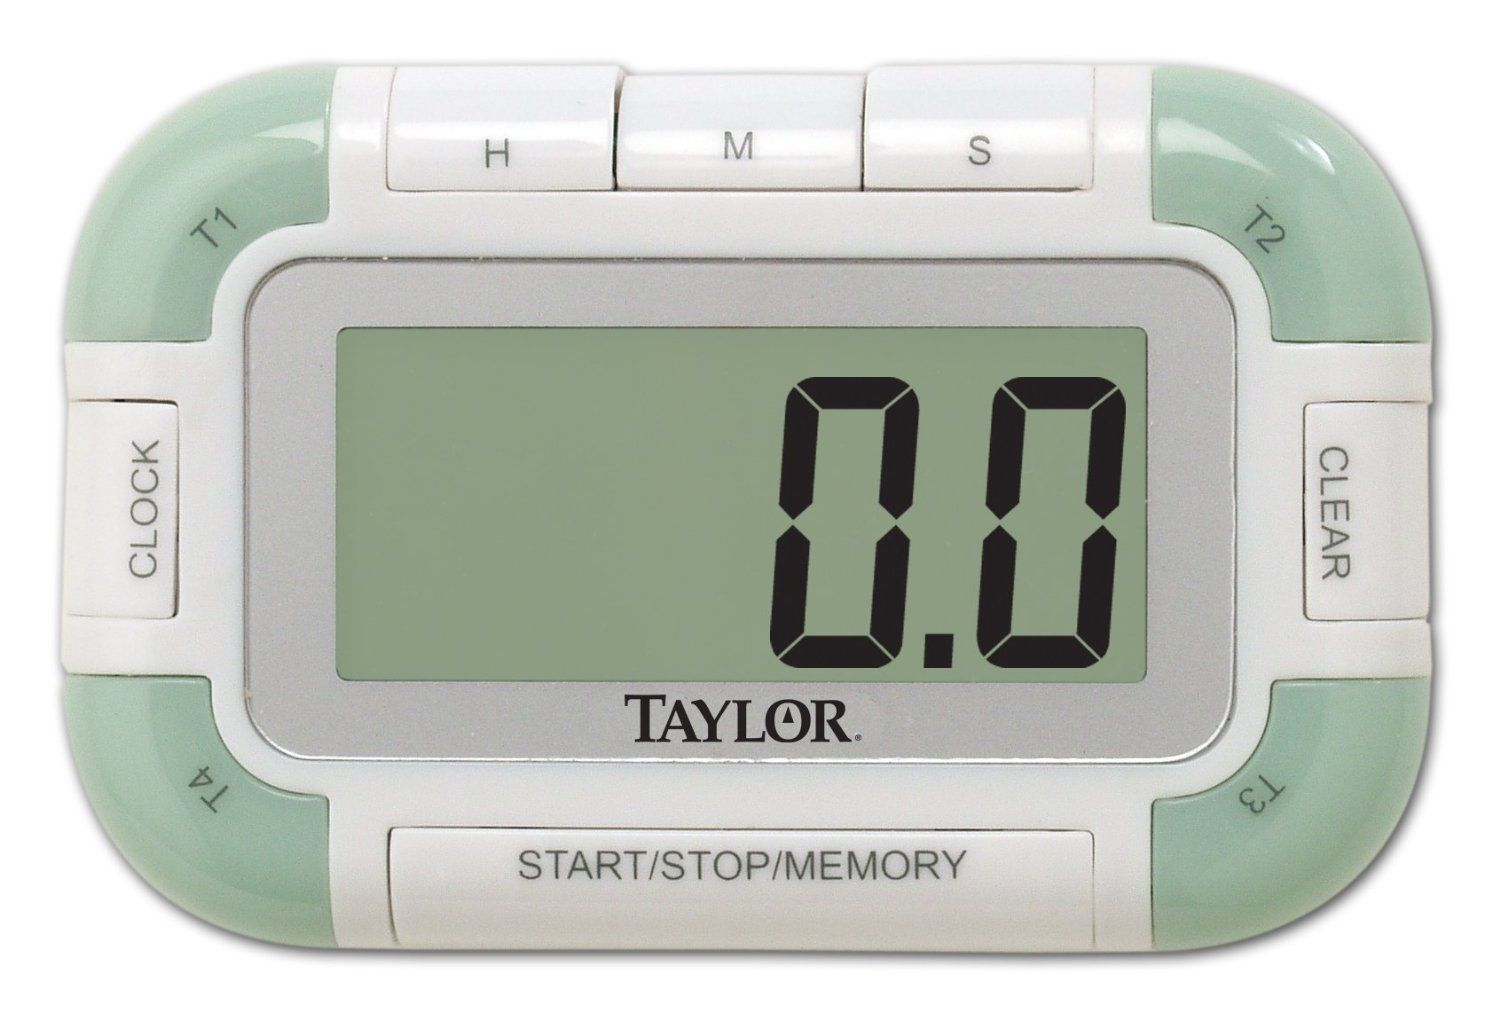 Taylor 5862 4 Event Digital Timer Home